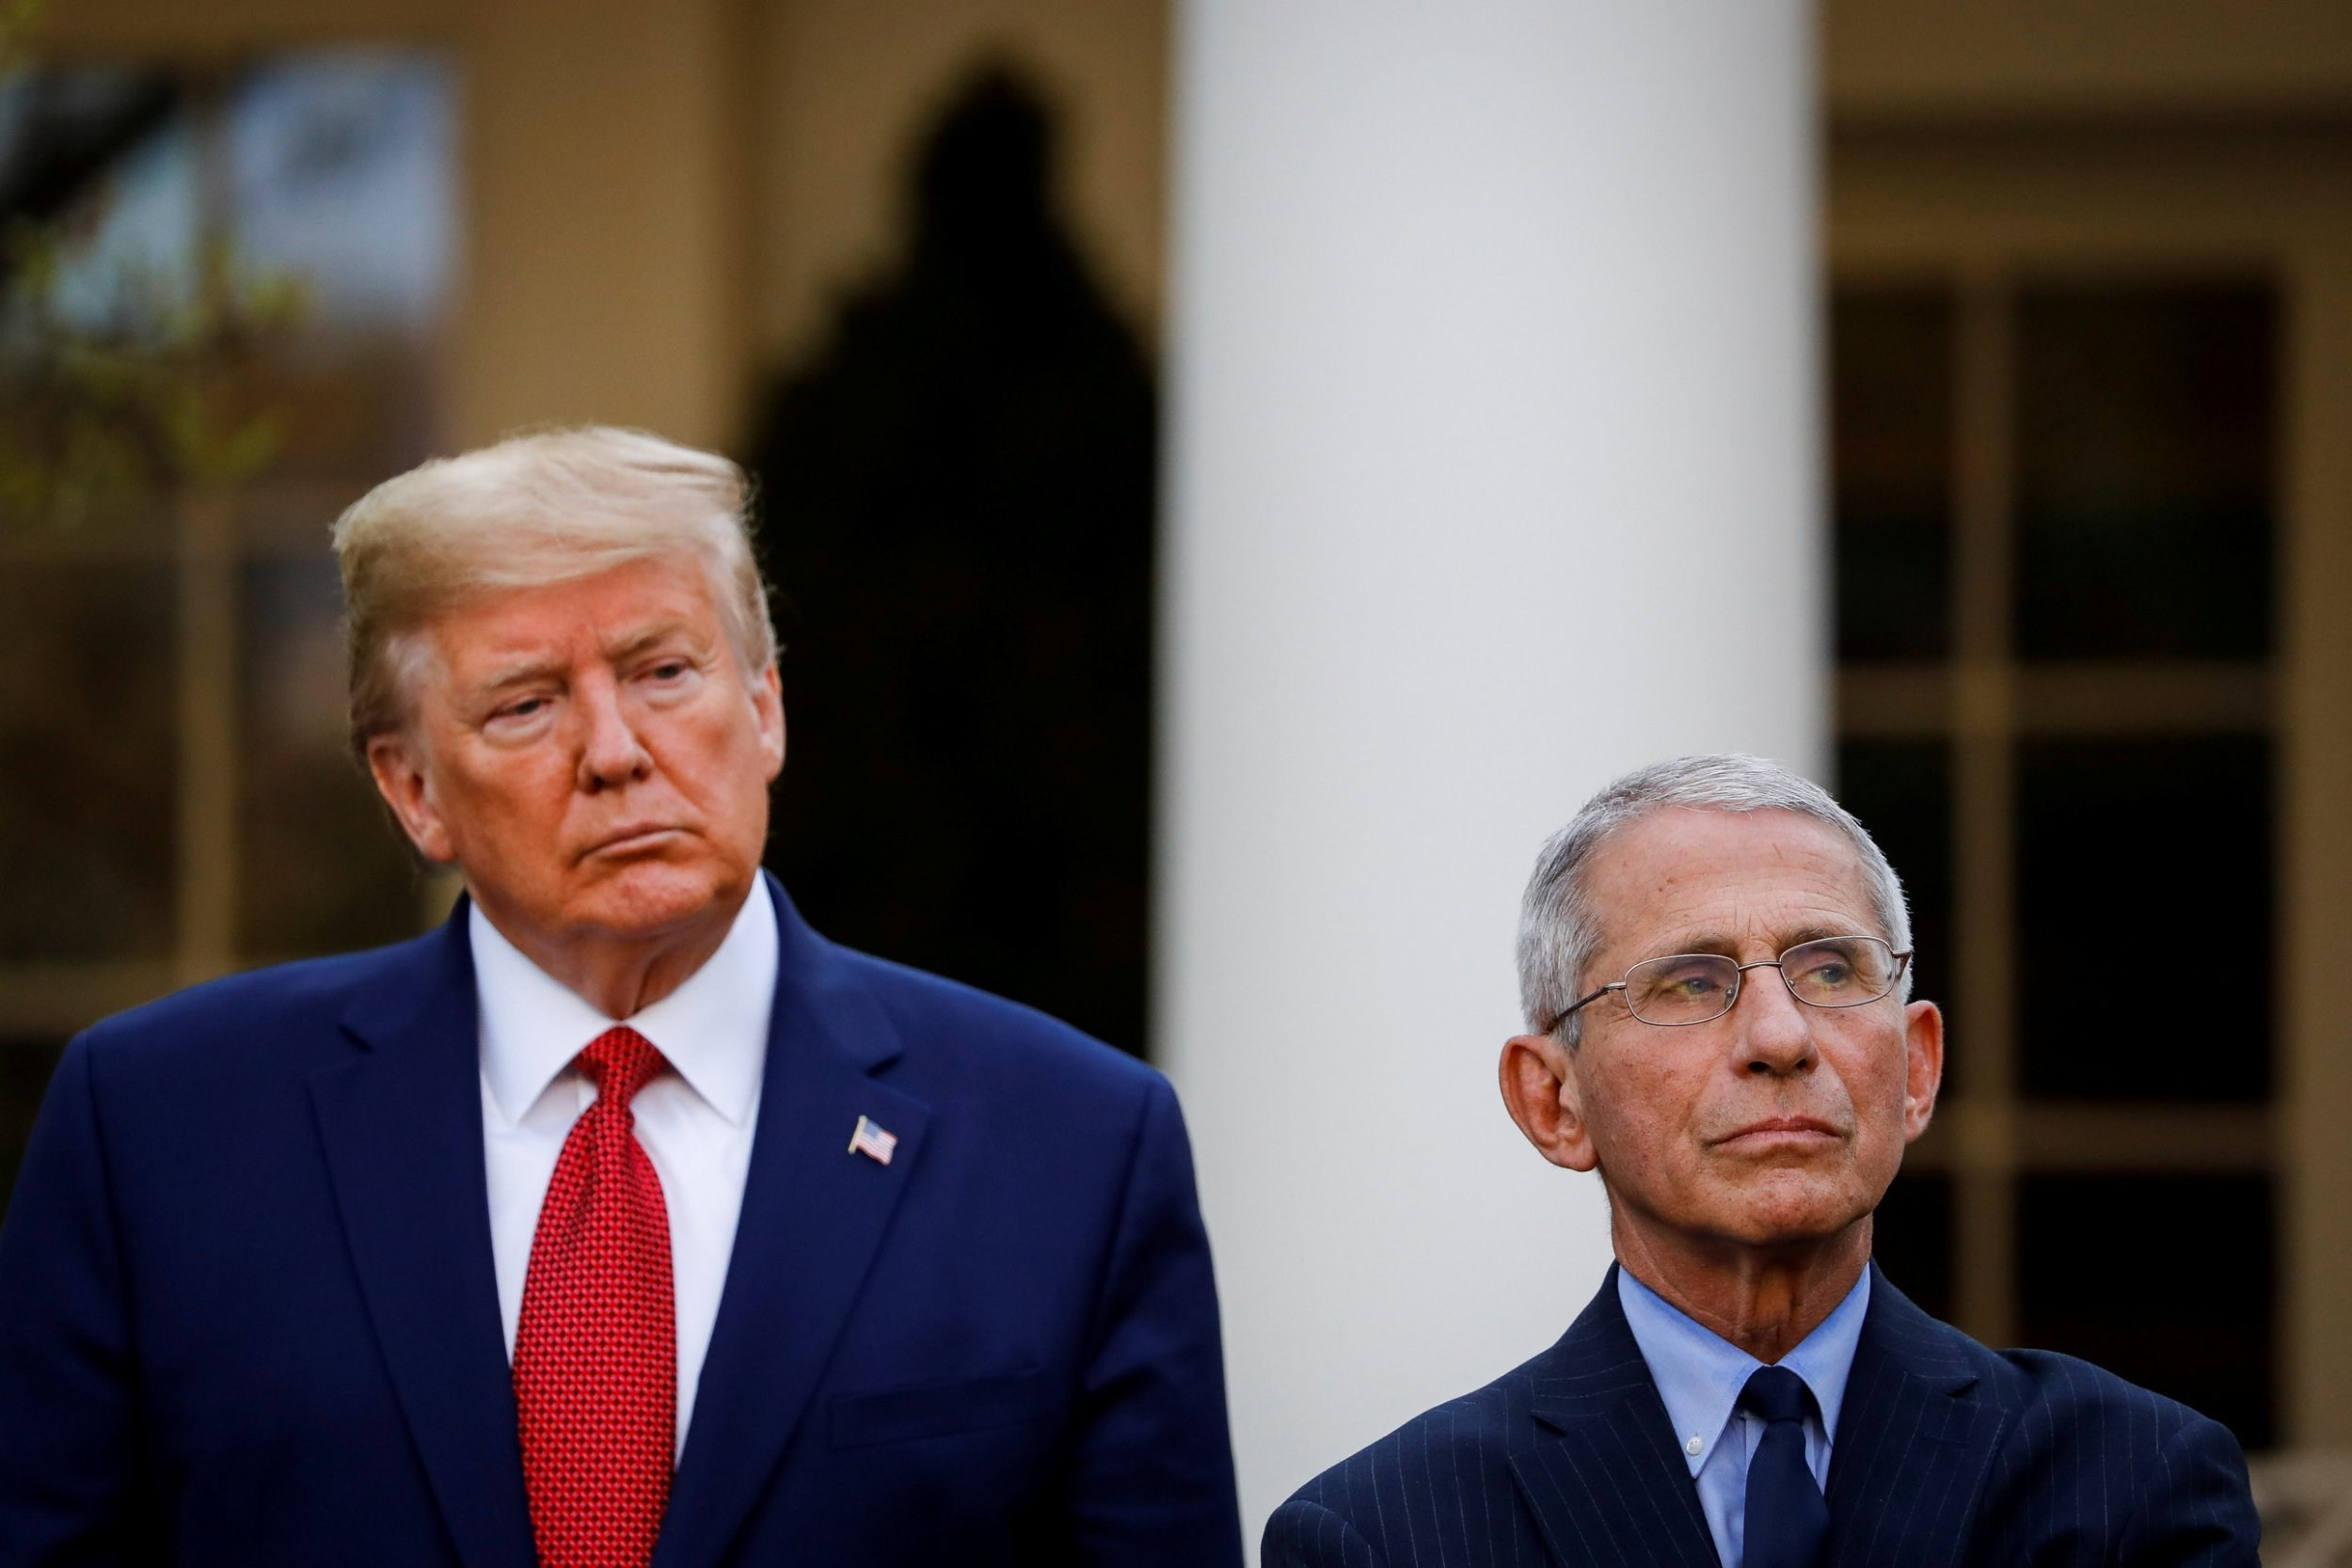 Donald Trump retweets call to fire Dr Fauci then says he will not ax Covid-19 expert